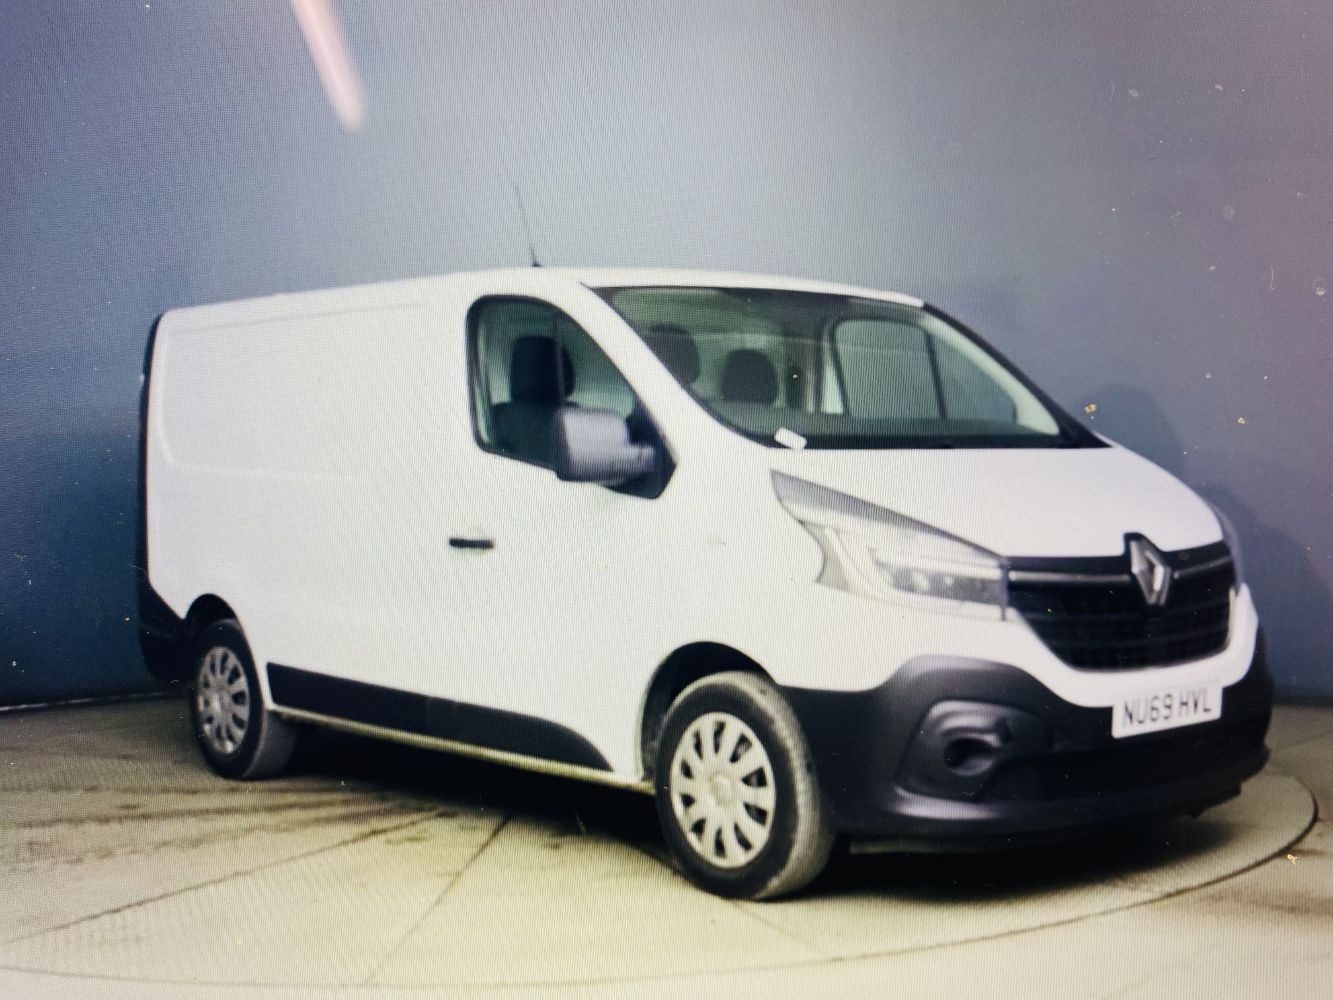 2020 Renault Trafic SL27 *Business Energy* Panel Van - 2019 - VW Caddy *Trendline* - 2017 Toyota Hilux *D/Cab* + Many More: Cars & Commercials